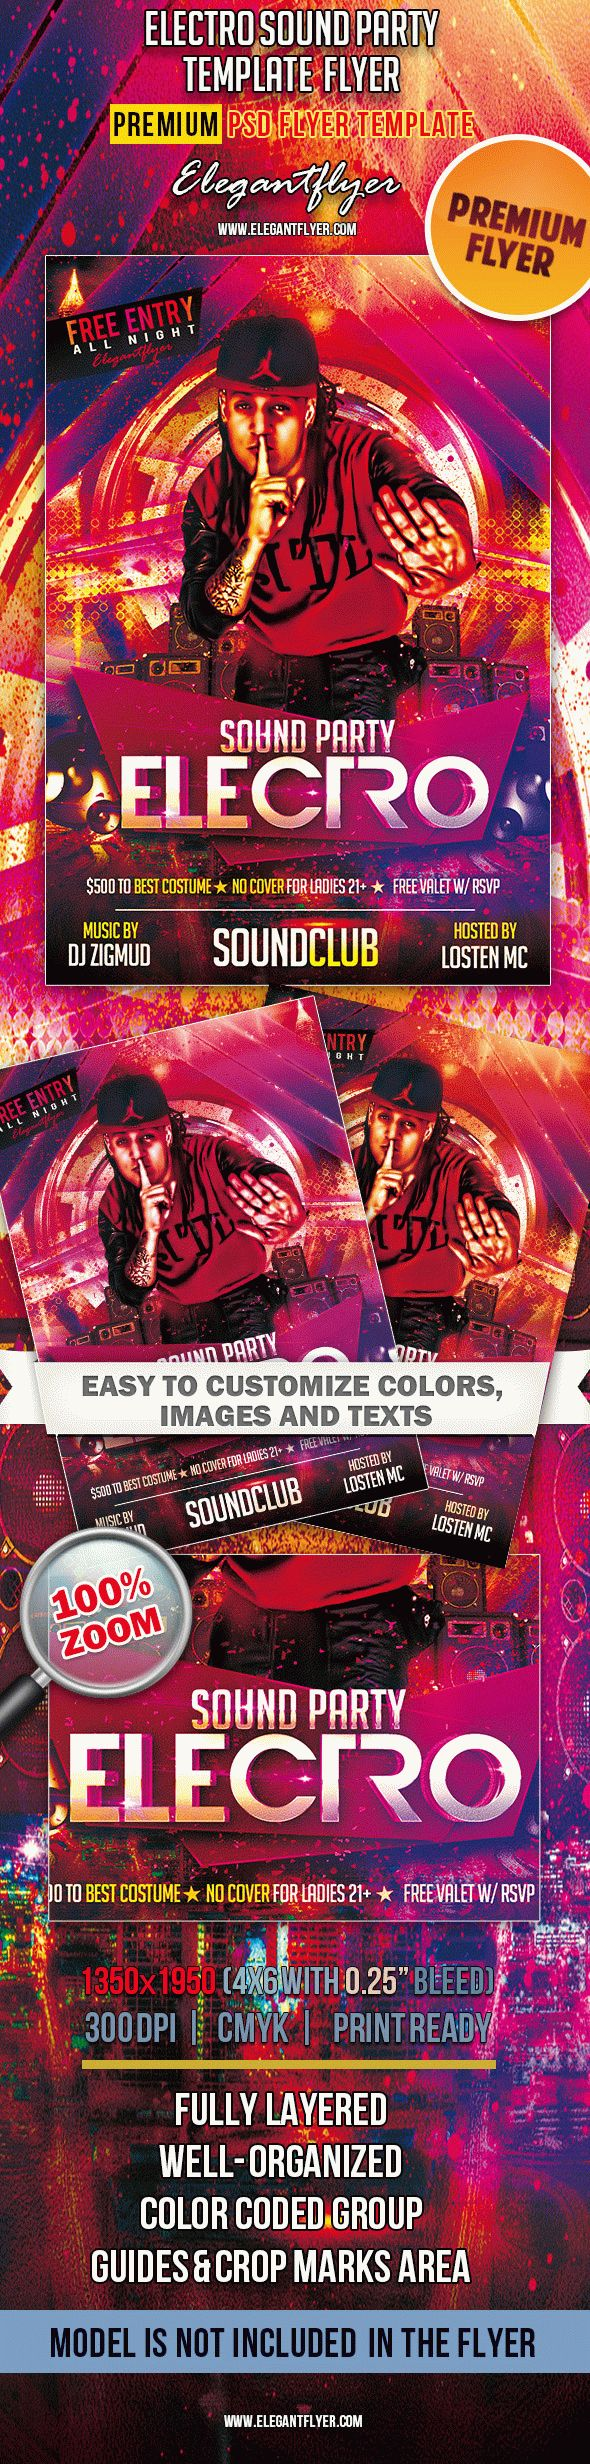 Electro Sound Party – Premium Club flyer PSD Template